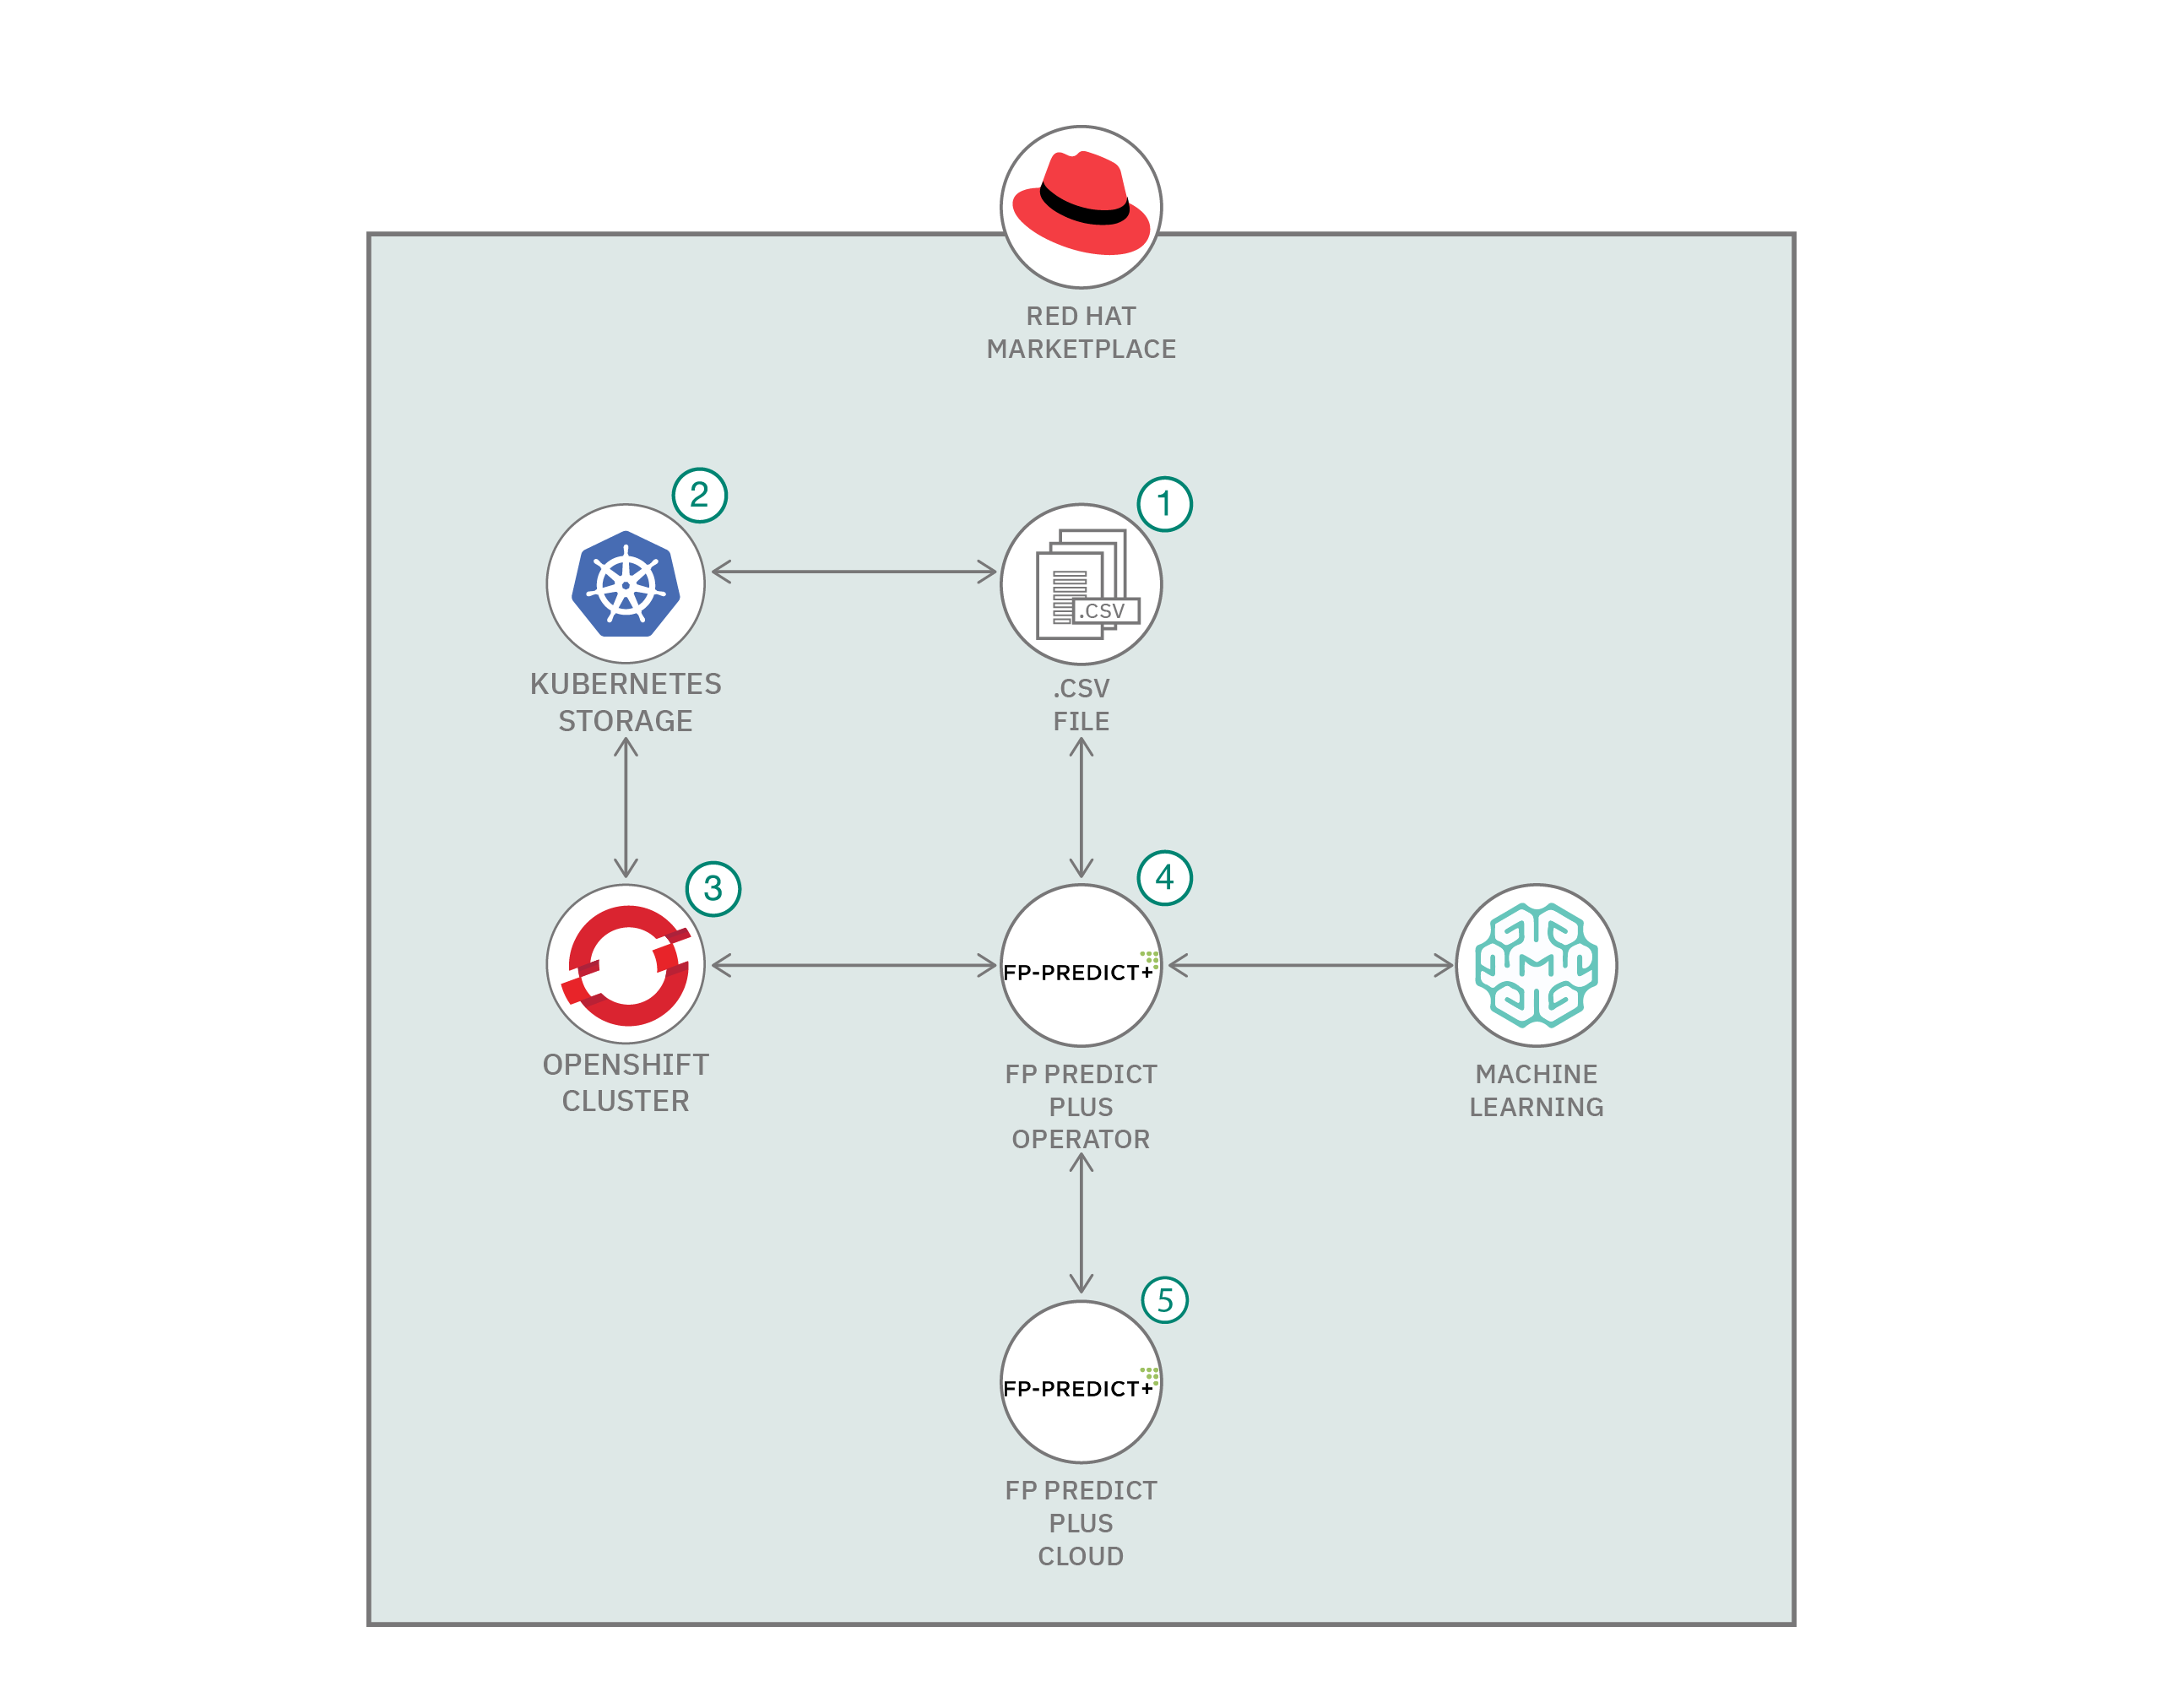 Architecture flow for code pattern